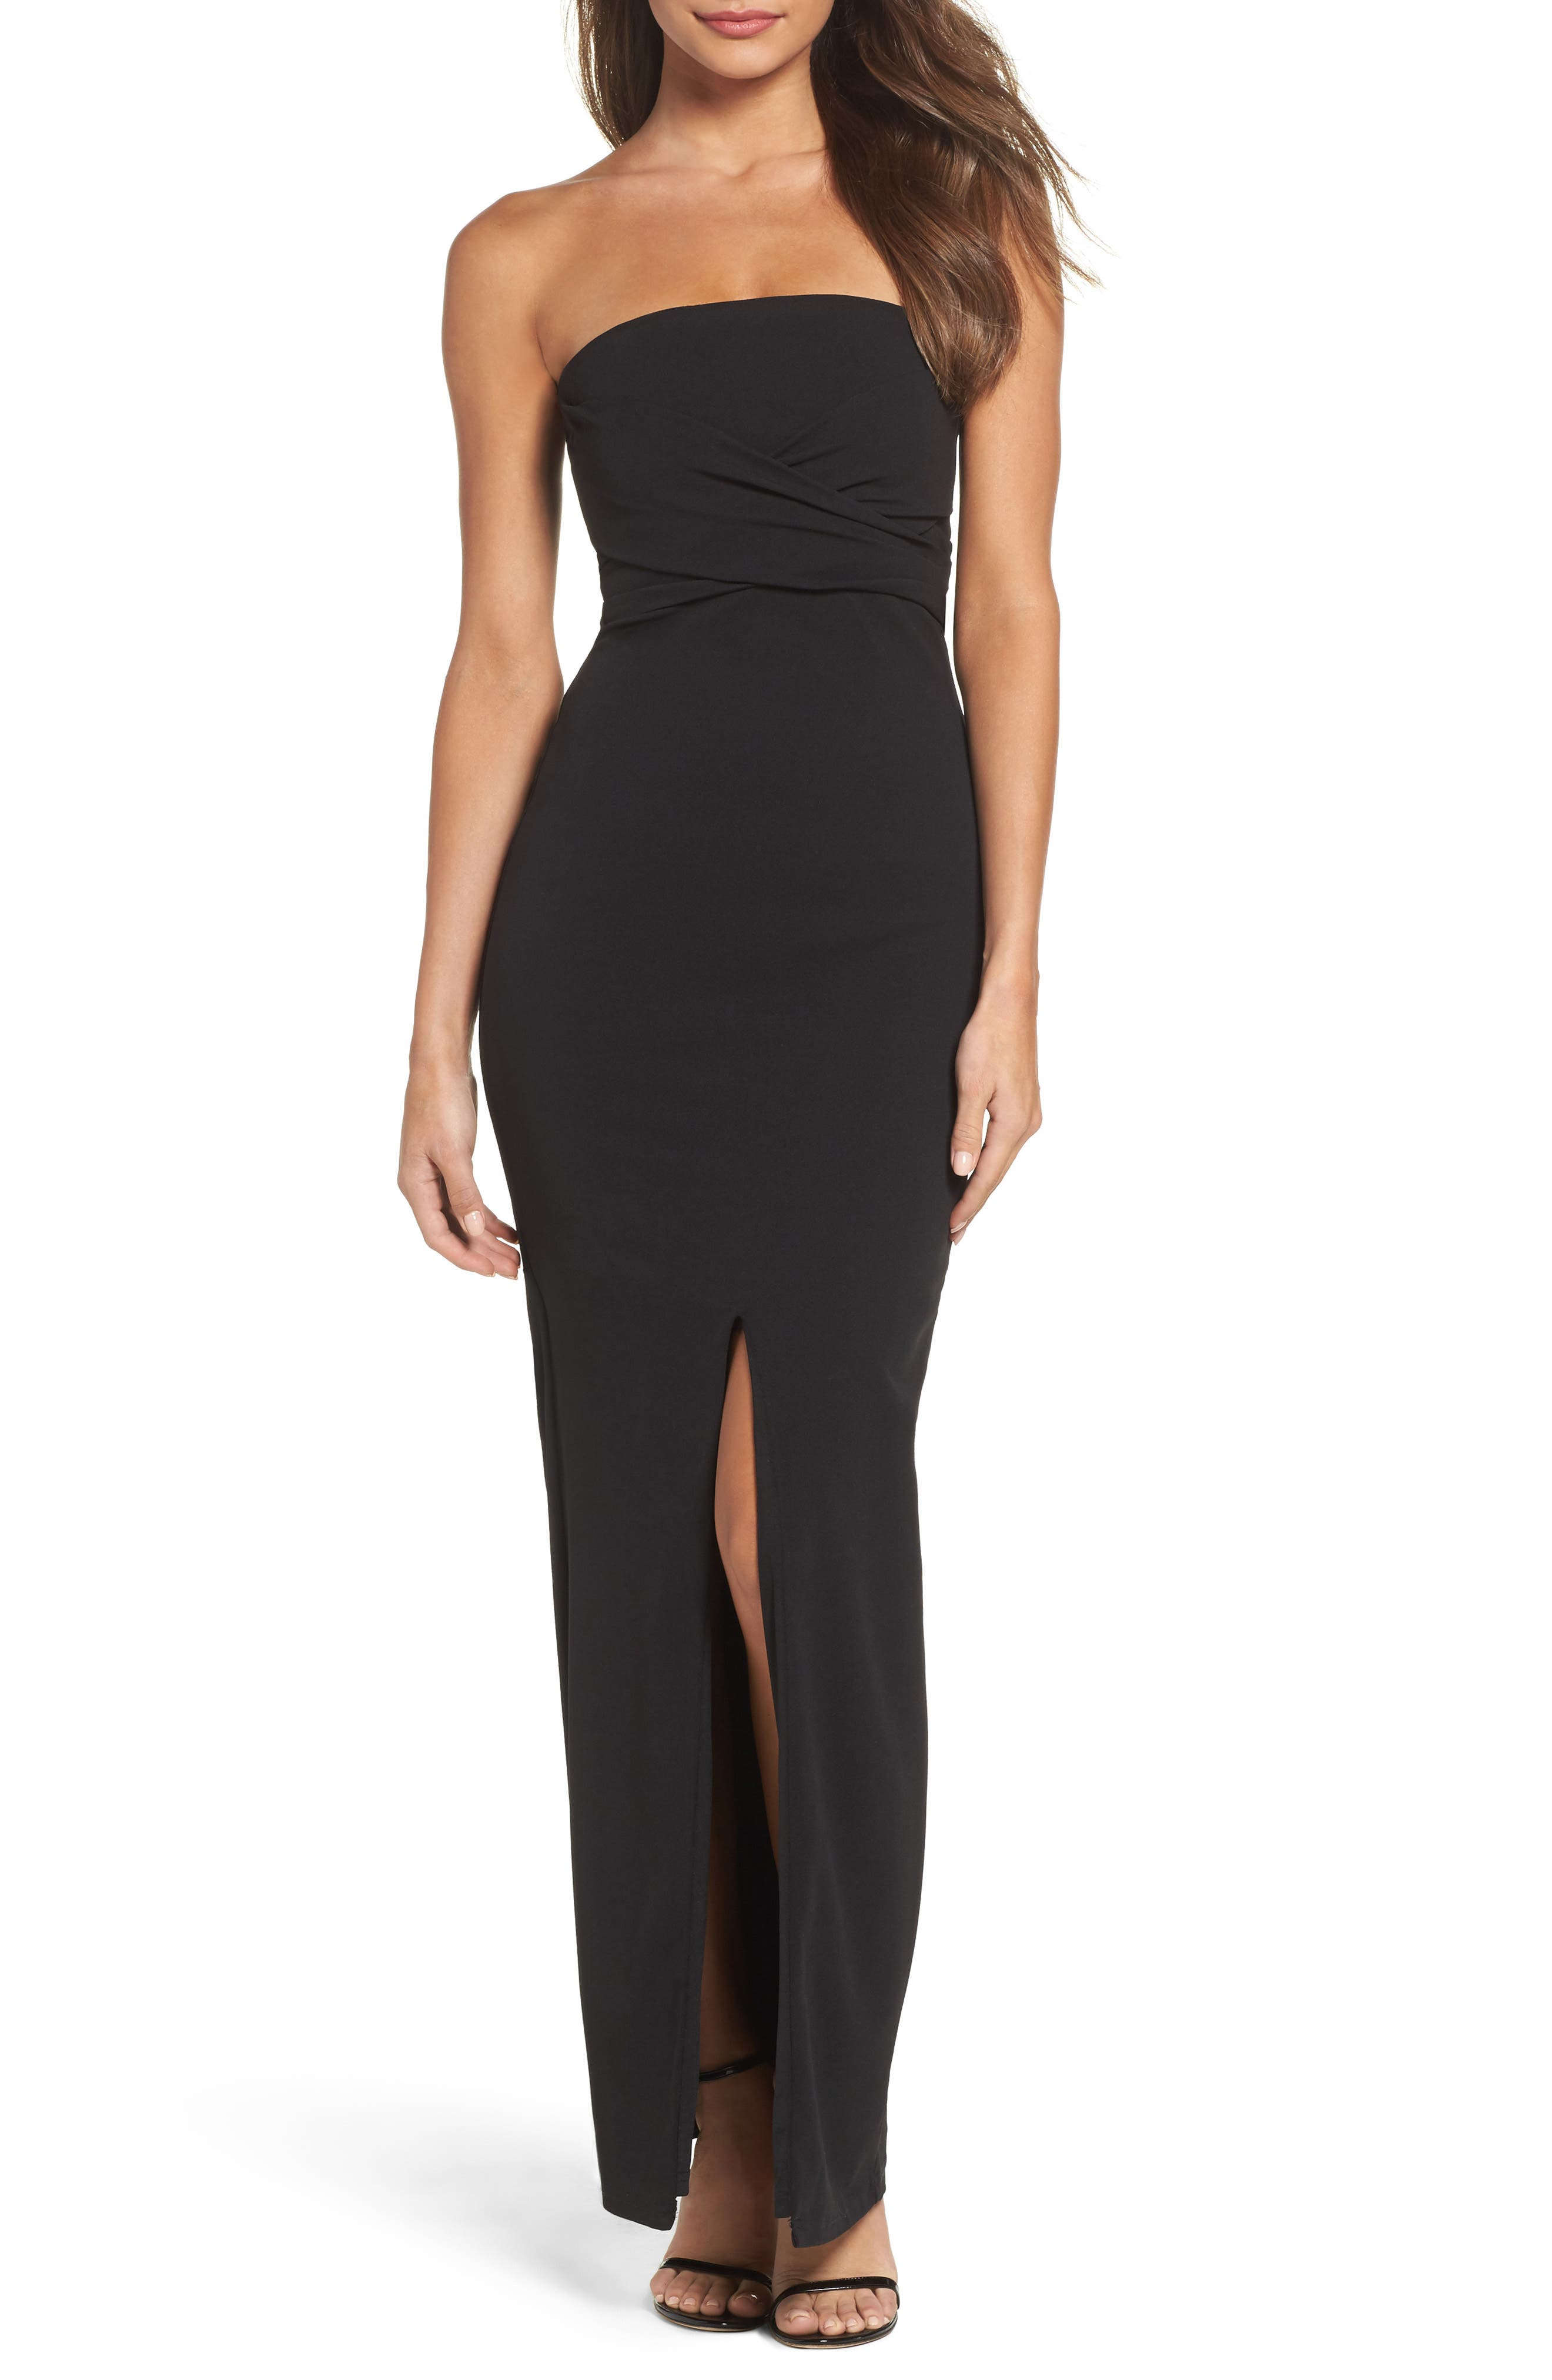 Lulus Own The Night Strapless Maxi Dress Nordstrom